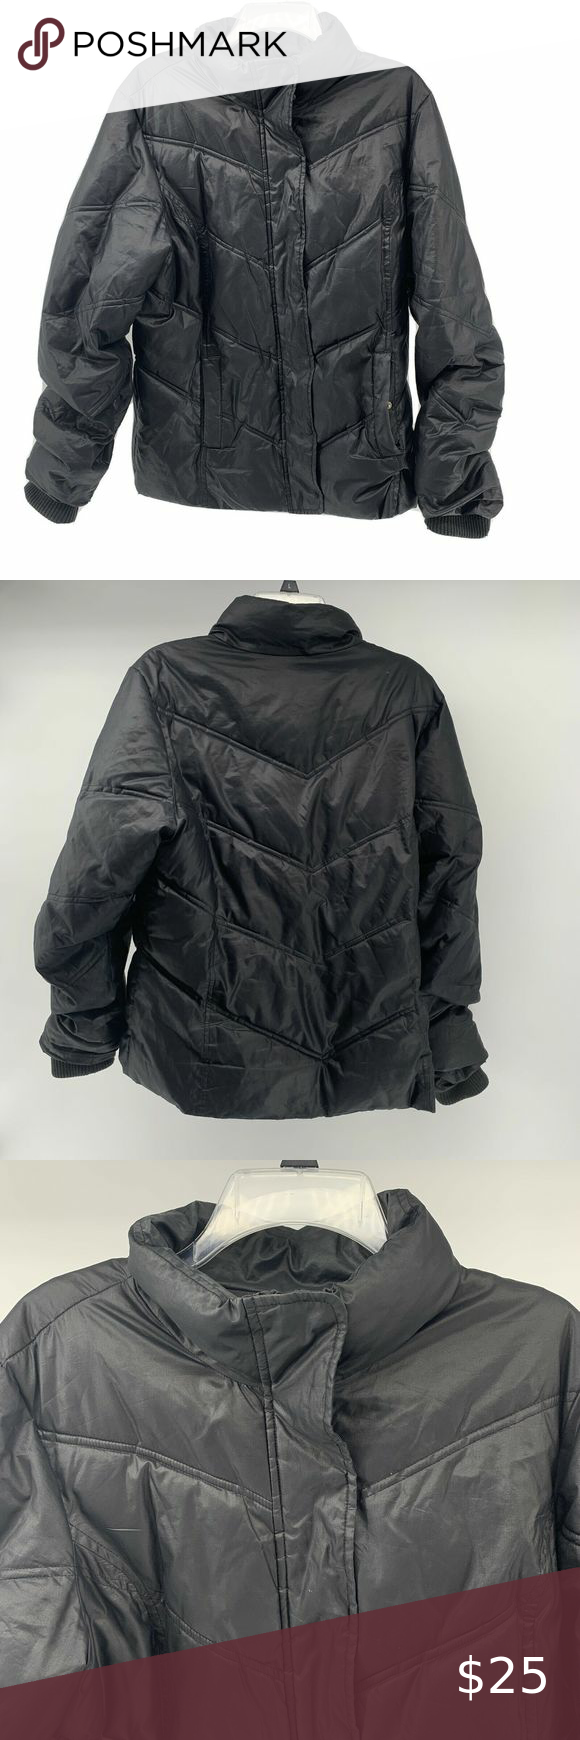 Gap Black Quilted Puffer Jacket Mens Large Quilted Puffer Jacket Puffer Jackets Gap Jacket [ 1740 x 580 Pixel ]